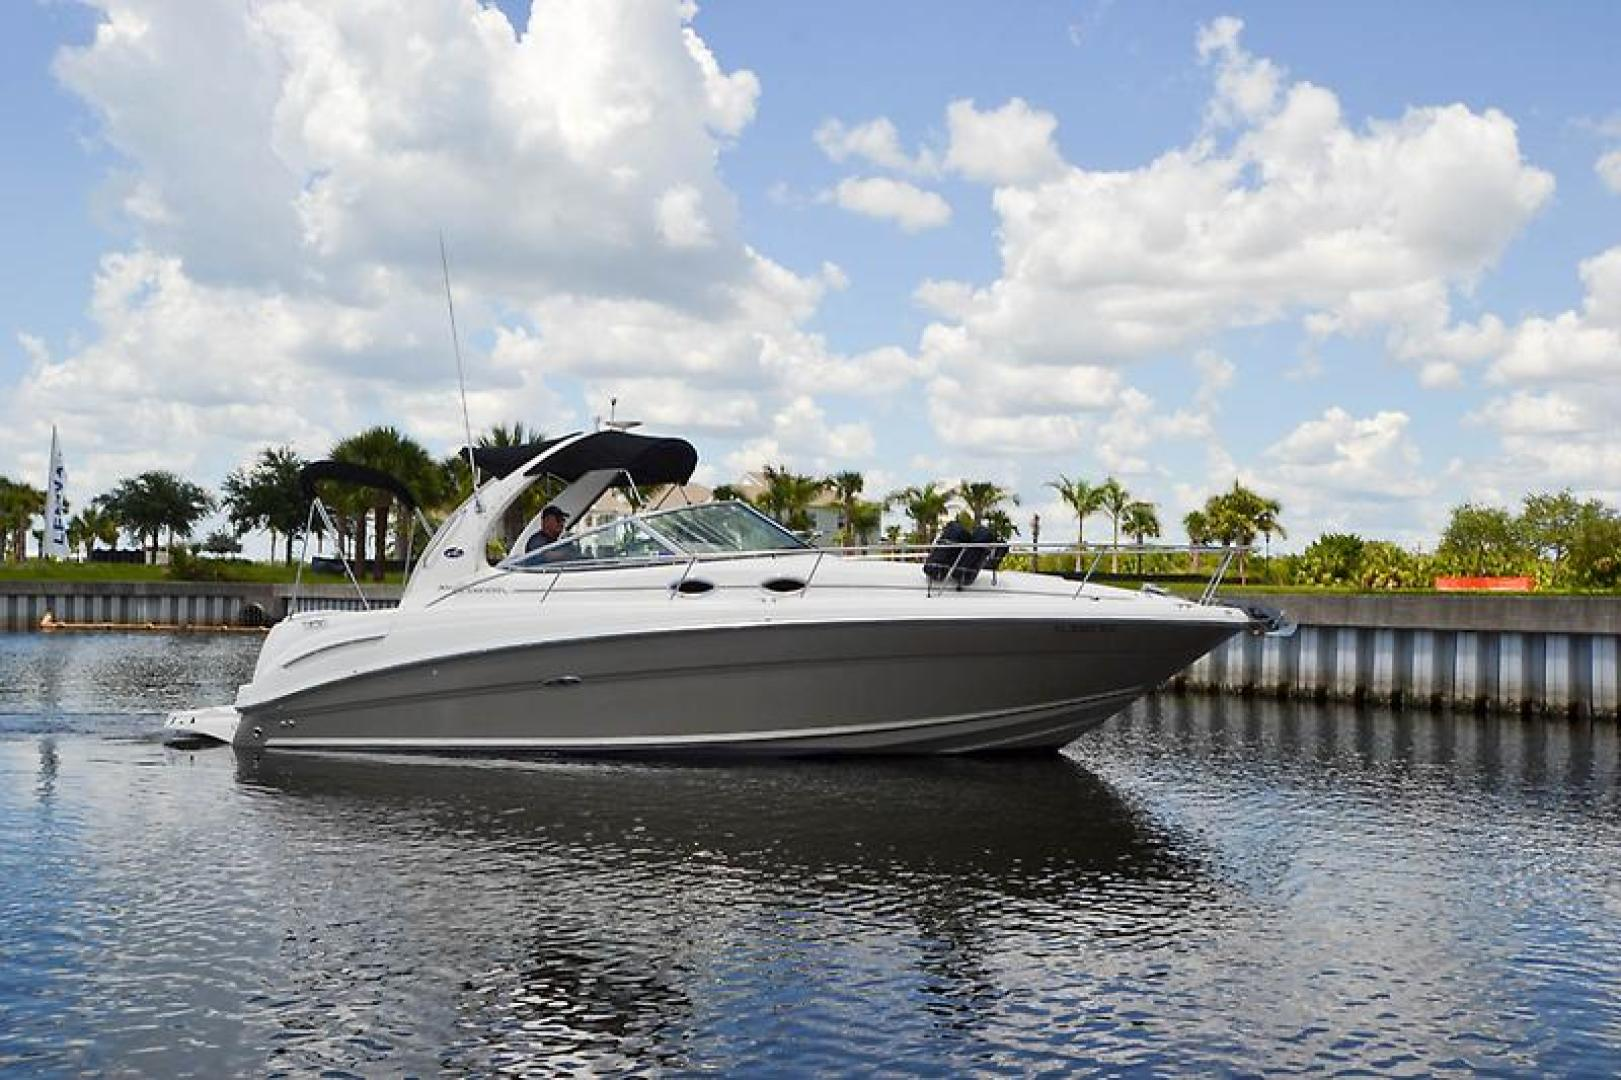 2006 Sea Ray 300 Sundancer-15-2.jpg